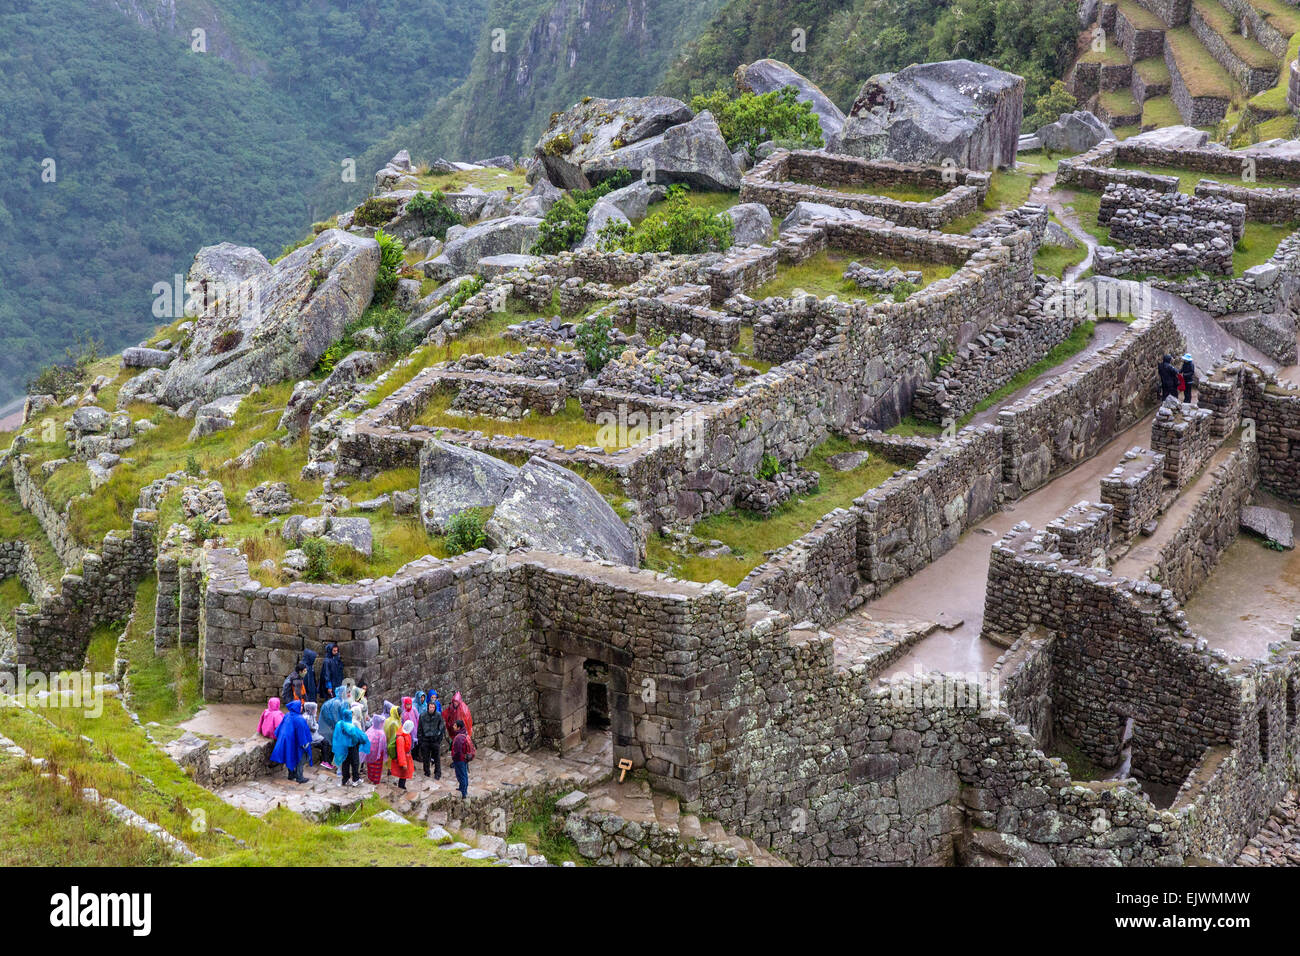 Peru, Machu Picchu.  Early Morning Light Rain Falling.  Tourists in Multicolored Ponchos About to Enter Main Doorway - Stock Image